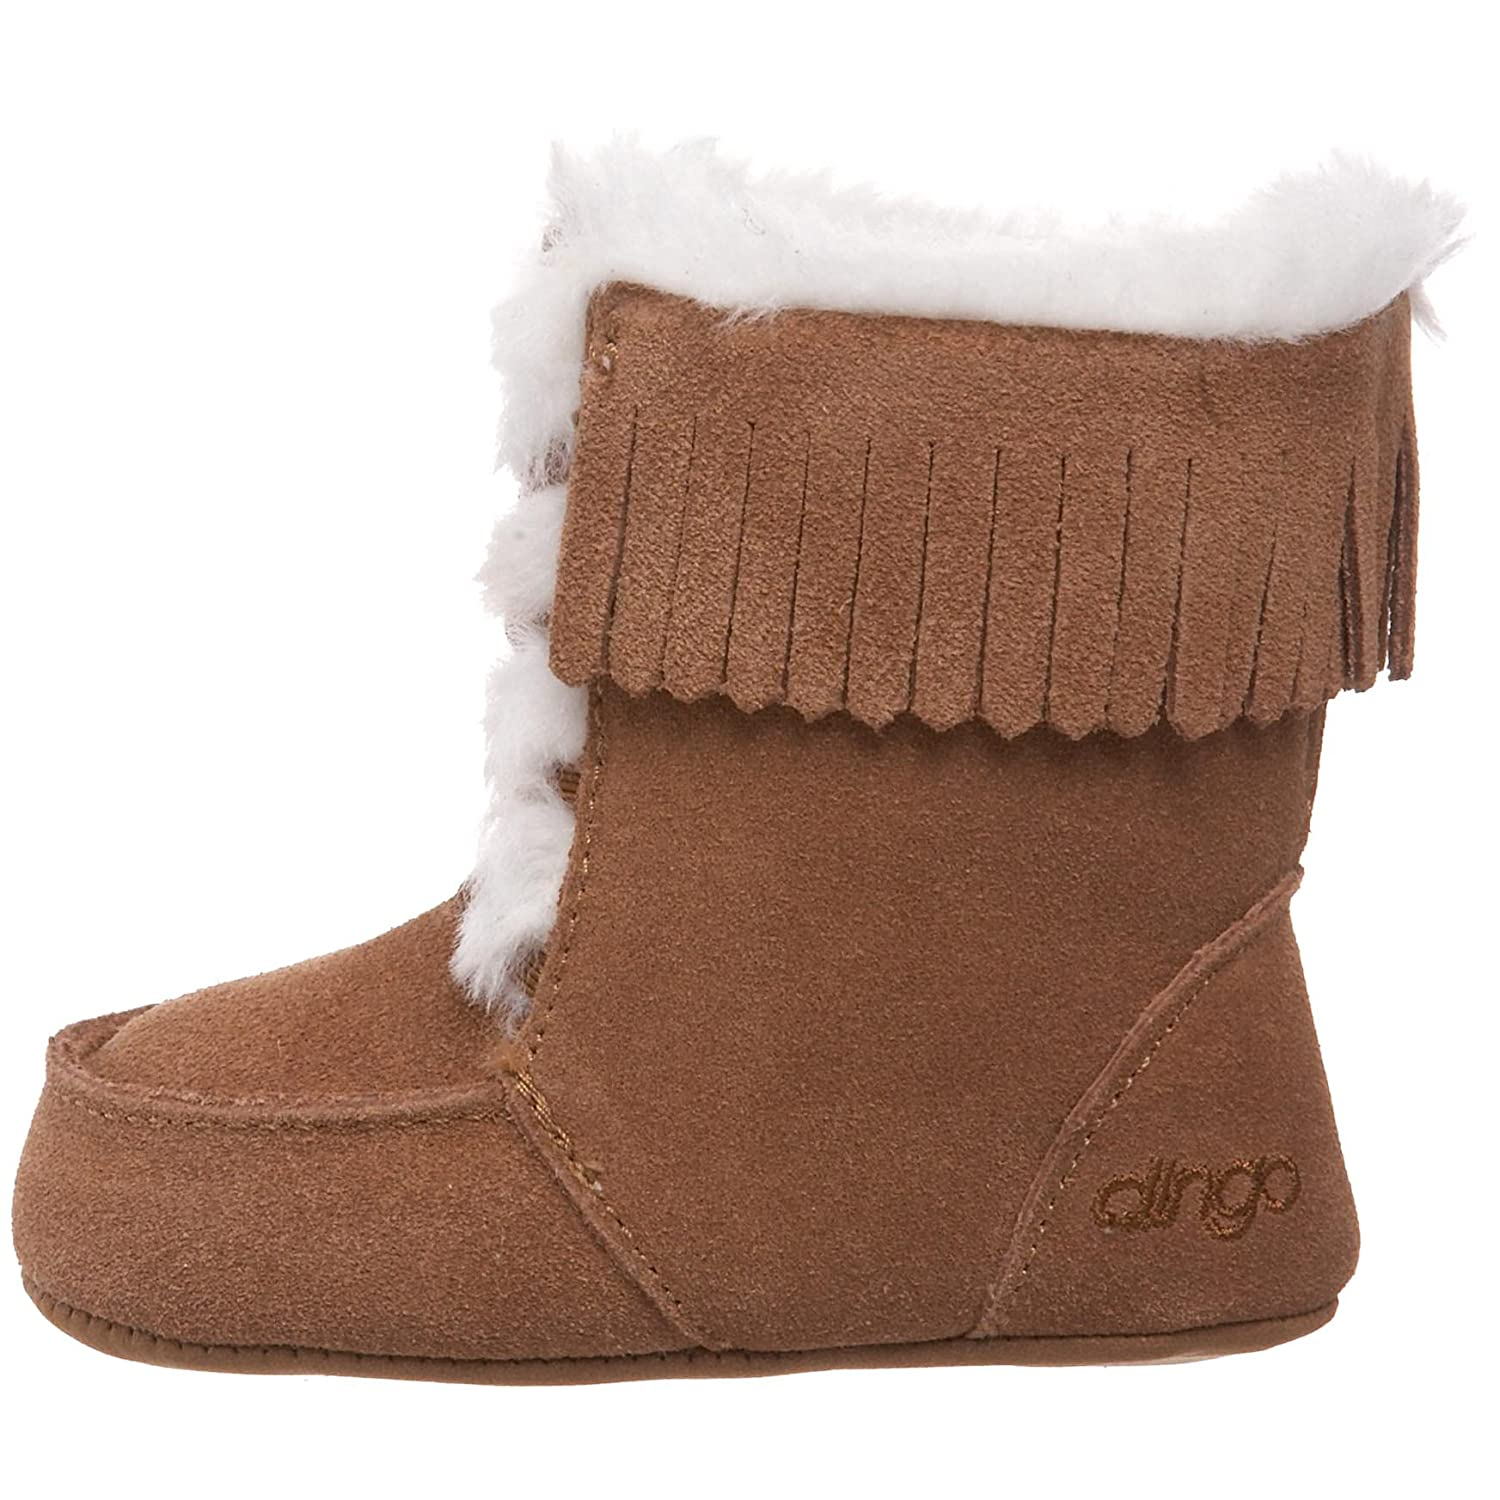 Dingo DIC0040 Moccasin Bootie Infant//Toddler